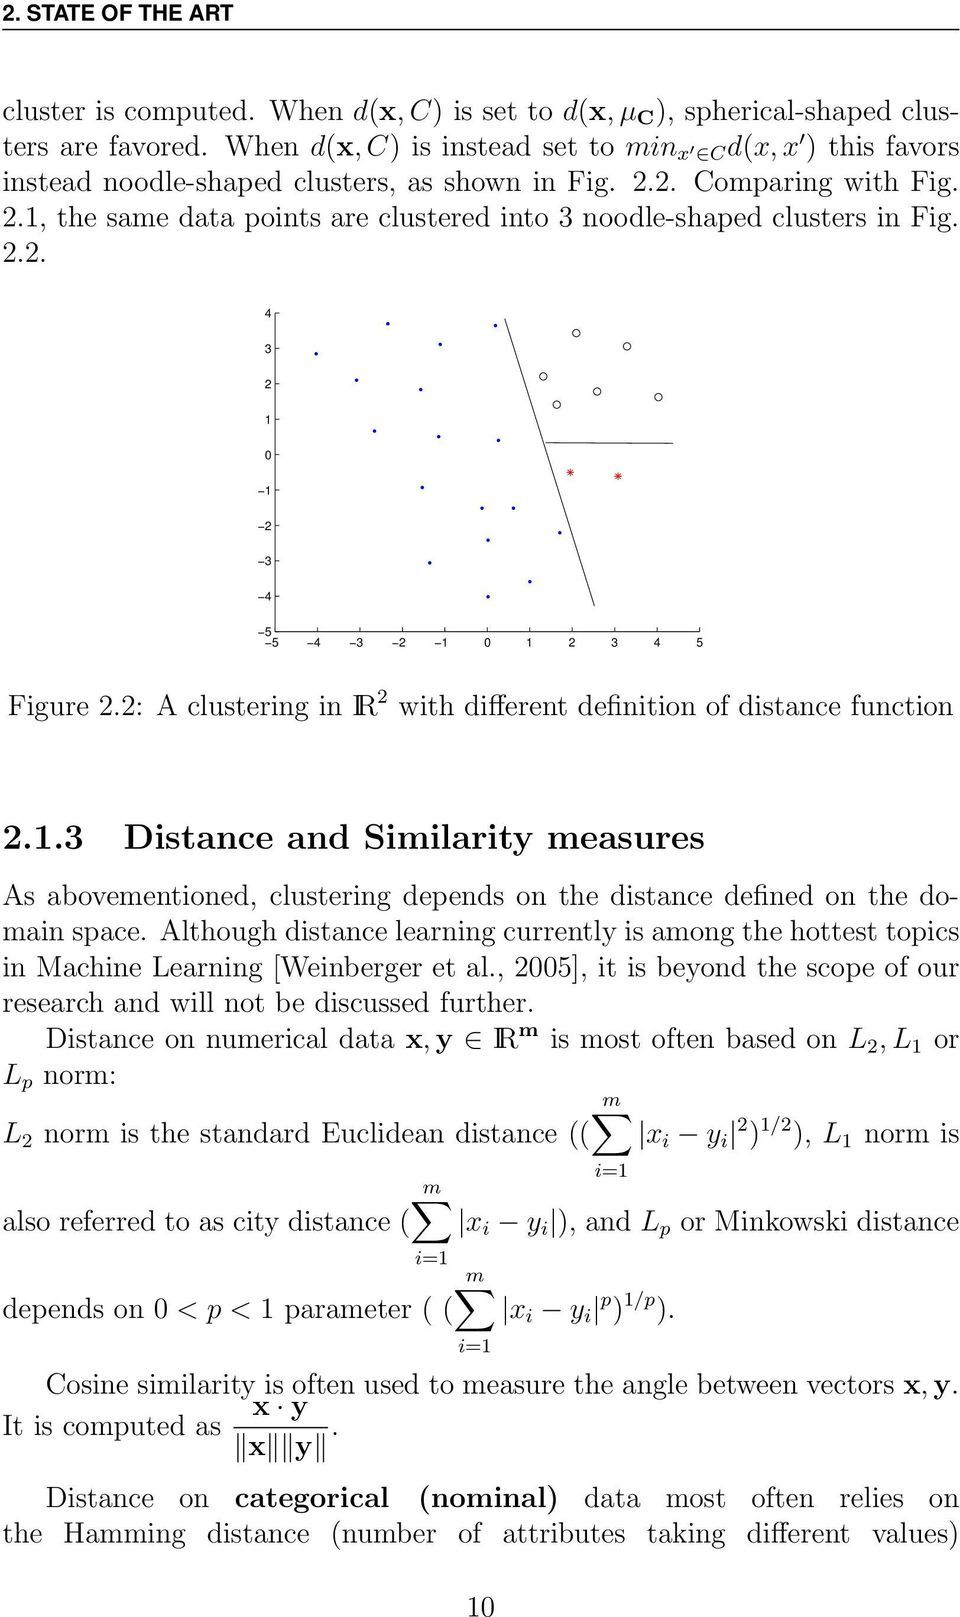 2.2. 4 3 2 1 0 1 2 3 4 5 5 4 3 2 1 0 1 2 3 4 5 Figure 2.2: A clustering in IR 2 with different definition of distance function 2.1.3 Distance and Similarity measures As abovementioned, clustering depends on the distance defined on the domain space.